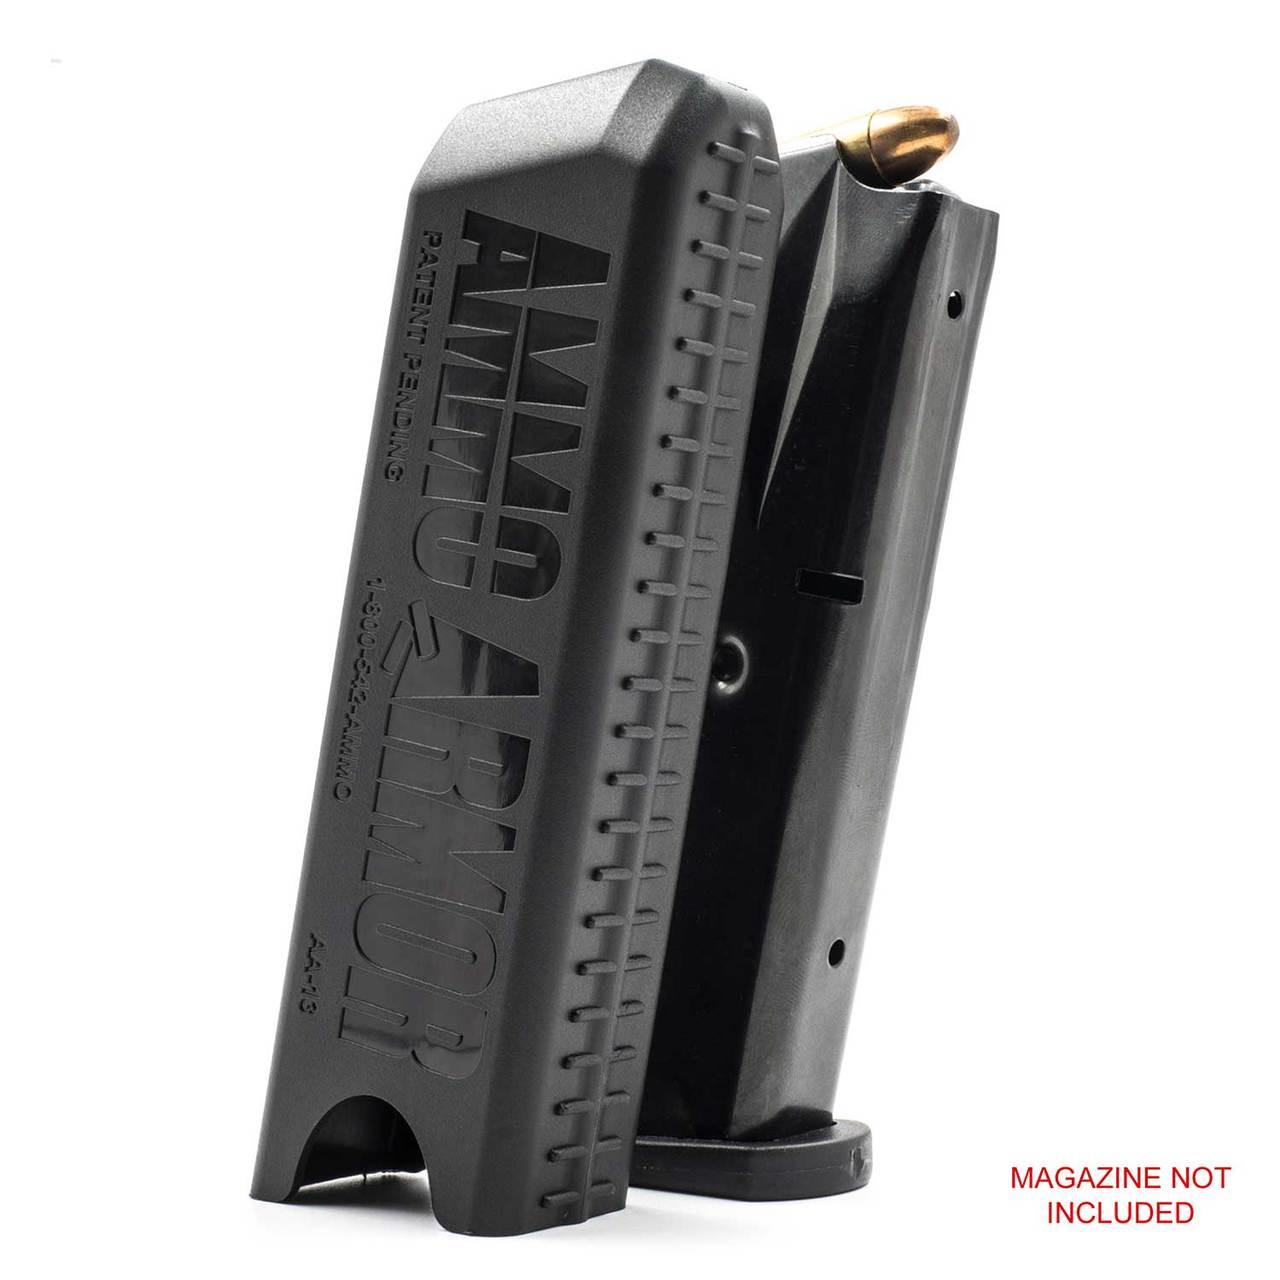 Ruger P94 Magazine Protector